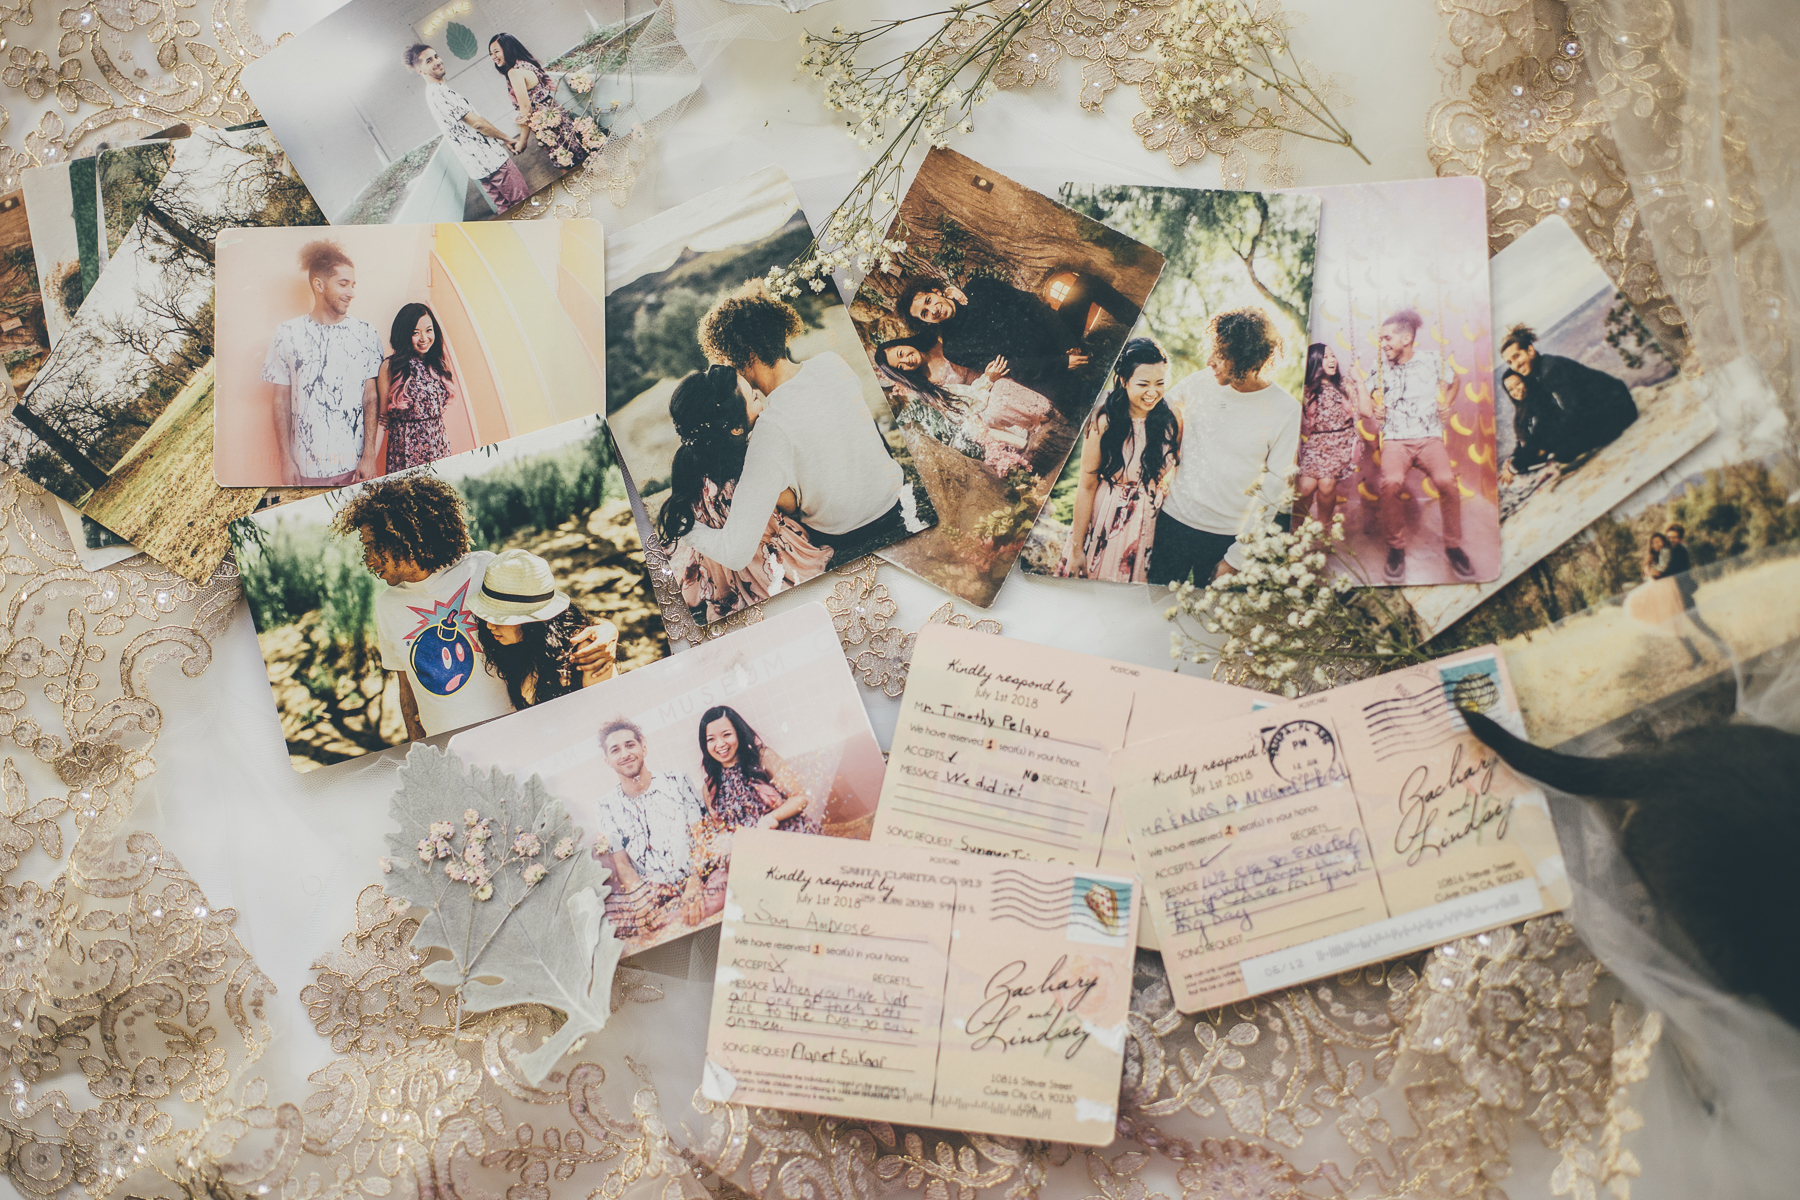 Blush Malibu Wedding Full of DIY Details - Inspired by This